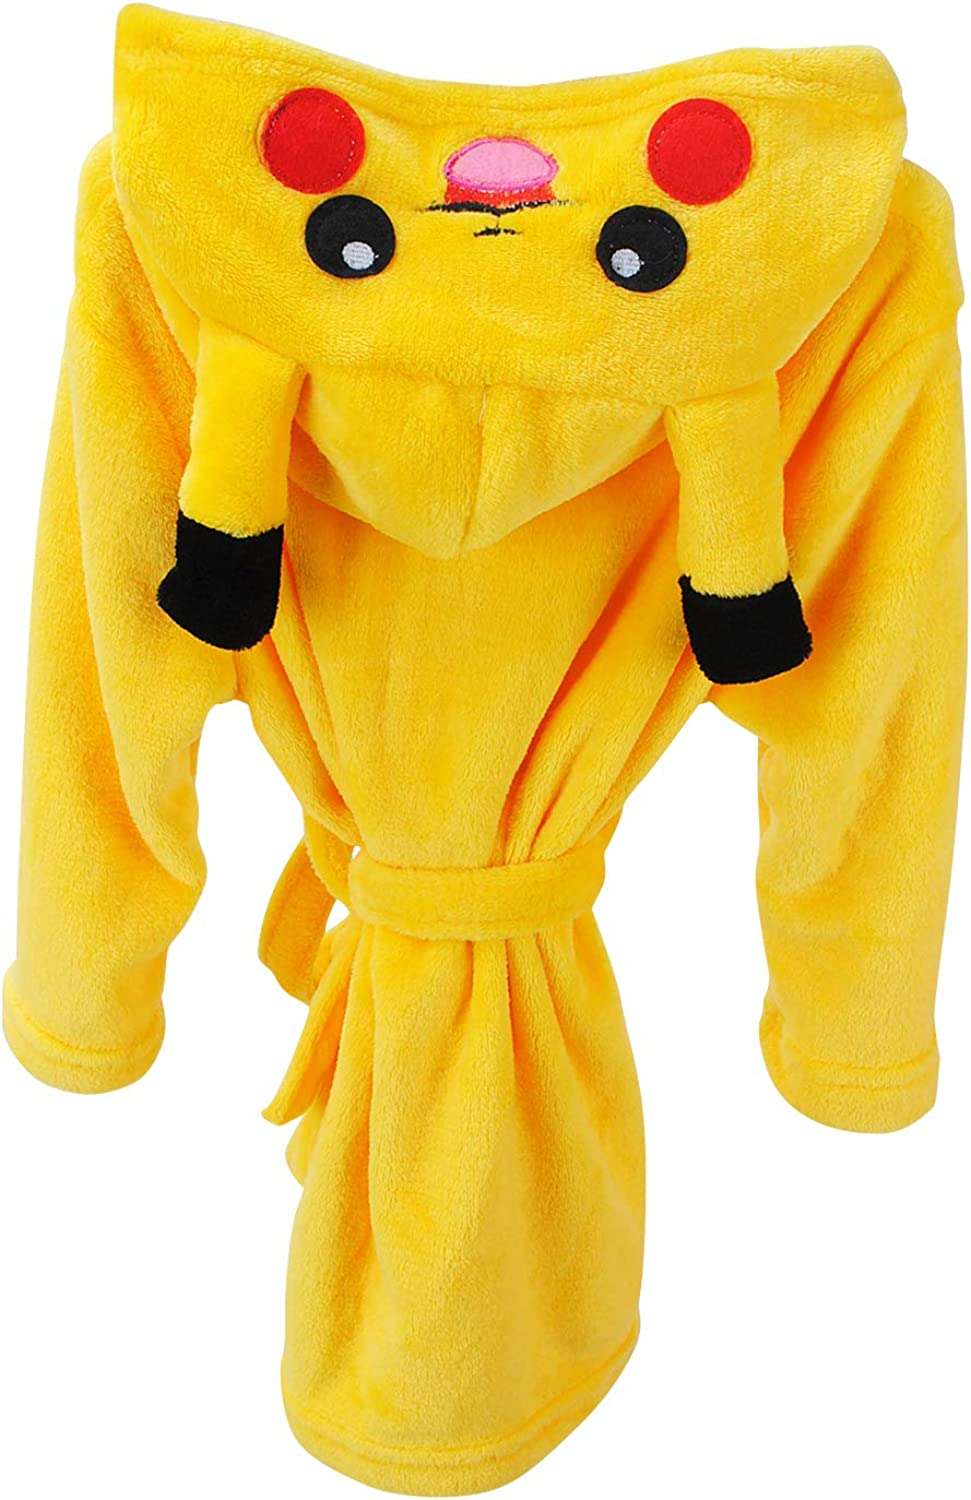 JollyRascals Girls Dressing Gown Kids New Novelty Mouse Hooded Fleece Robe Age 2 3 4 5 6 7 8 9 10 11 12 13 Years